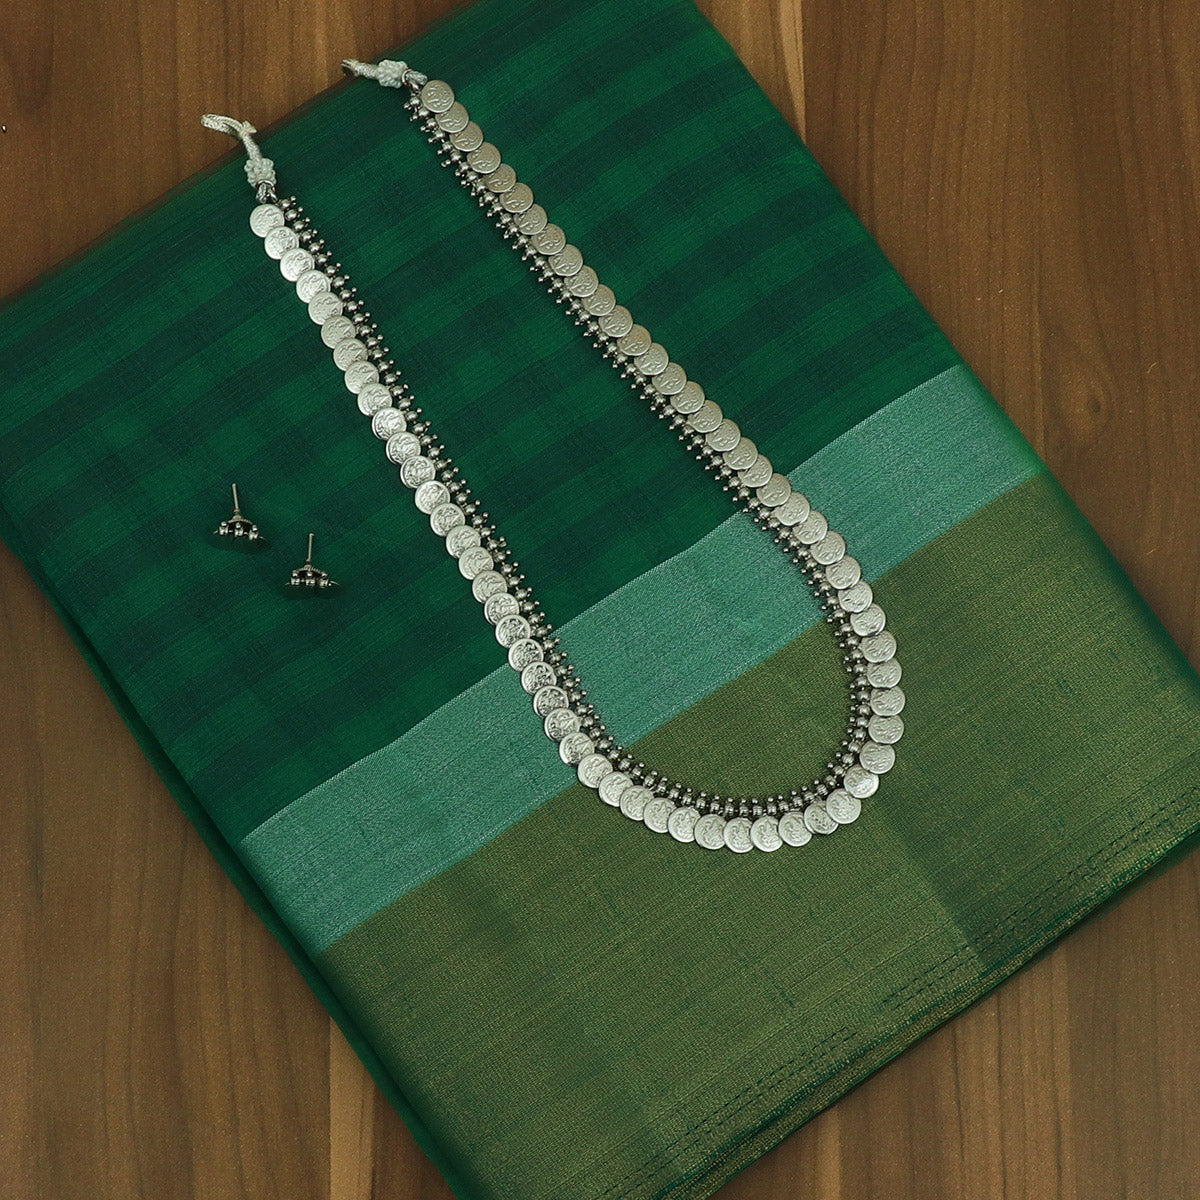 Raw Silk Saree Green with Small Checked and Zari border and jewel